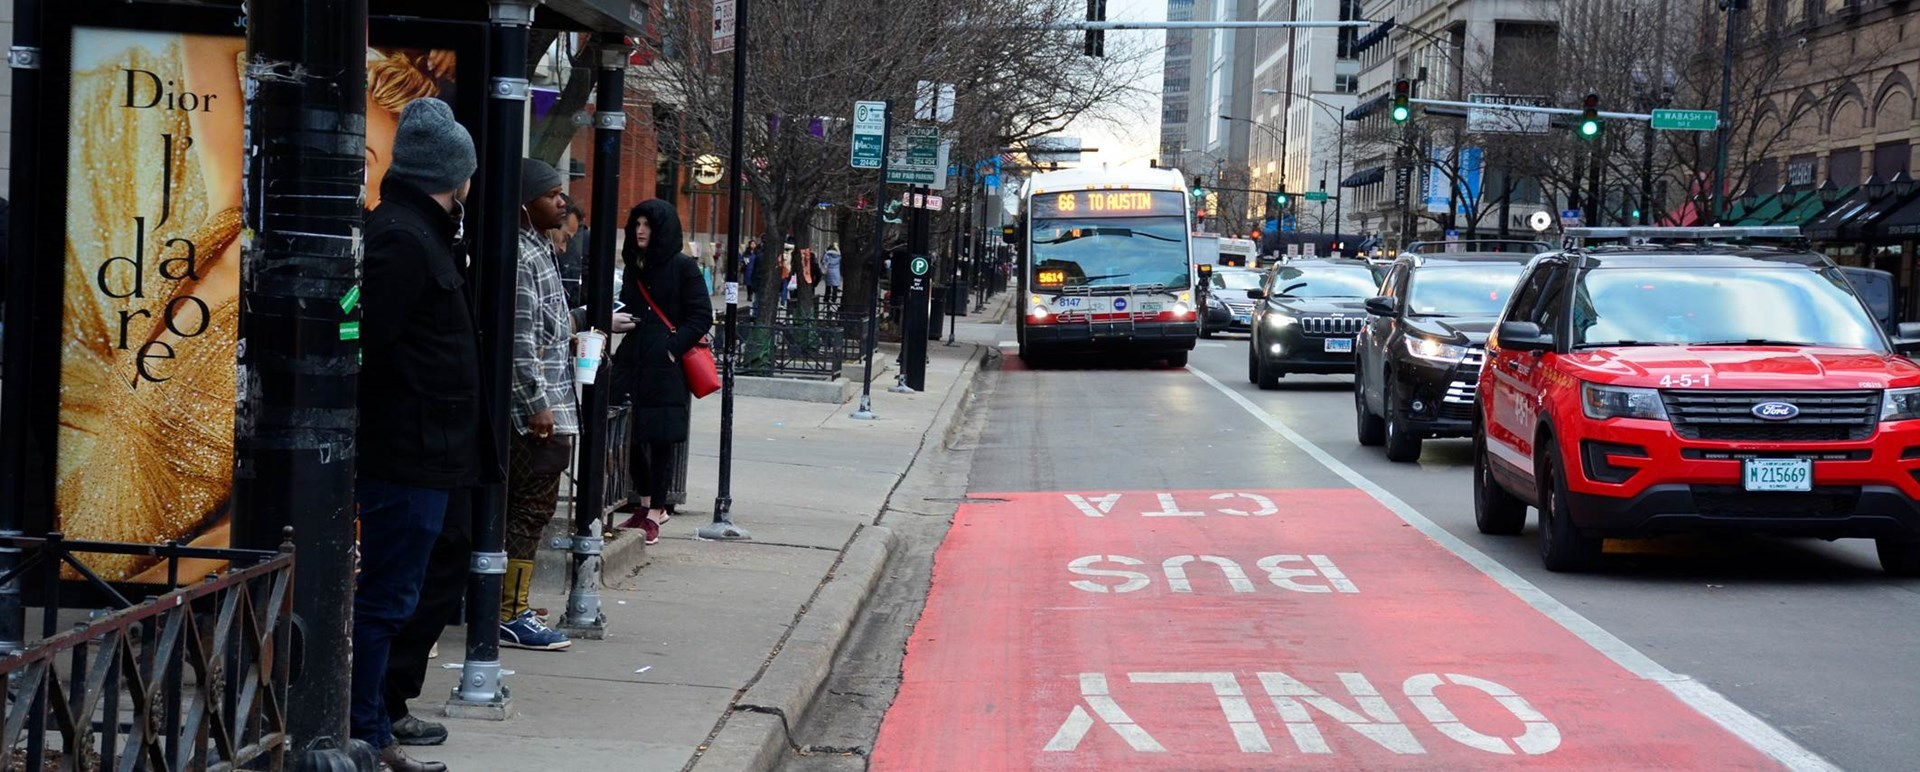 A #66 Chicago bus traveling in a bus only lane.